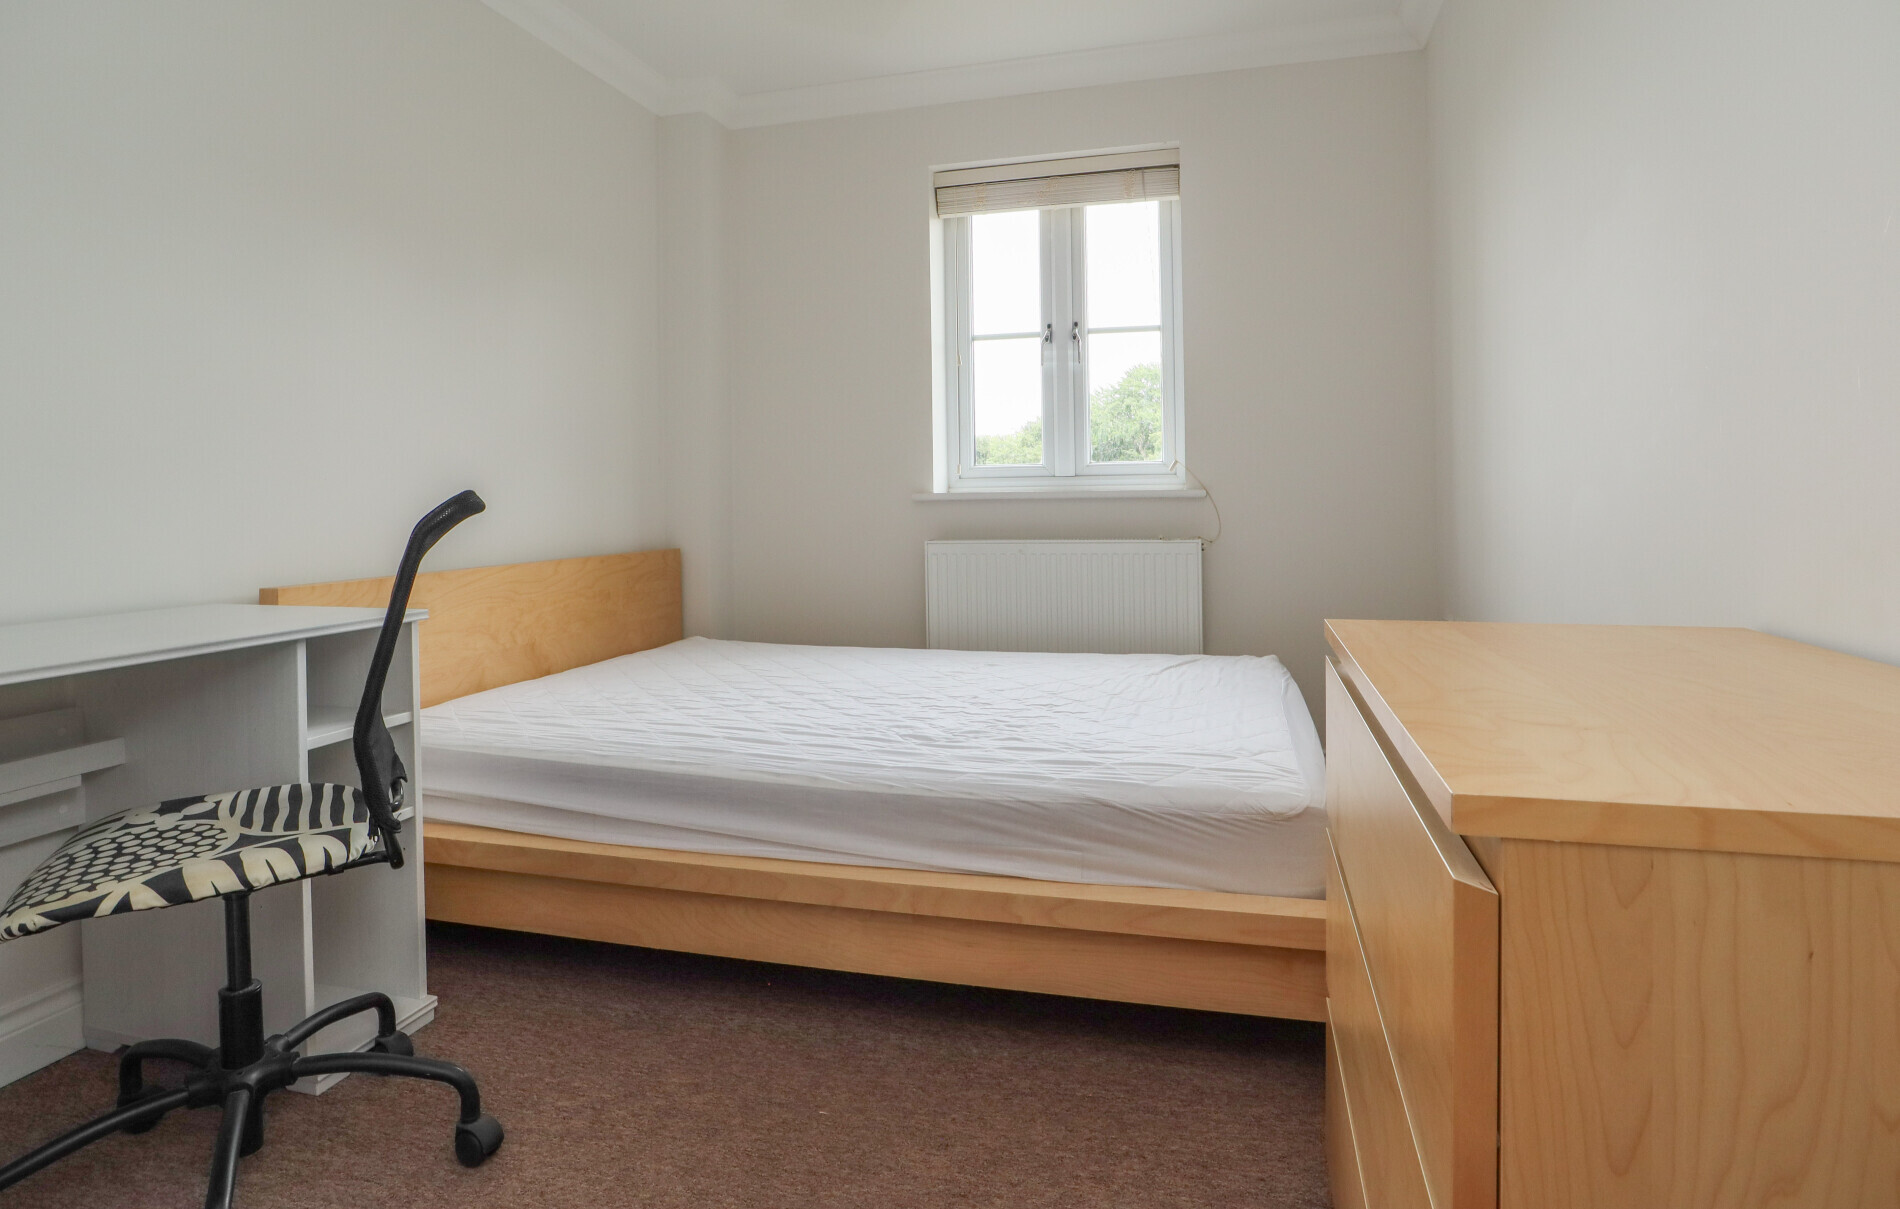 6 bedroom student house in Golden Triangle, Norwich